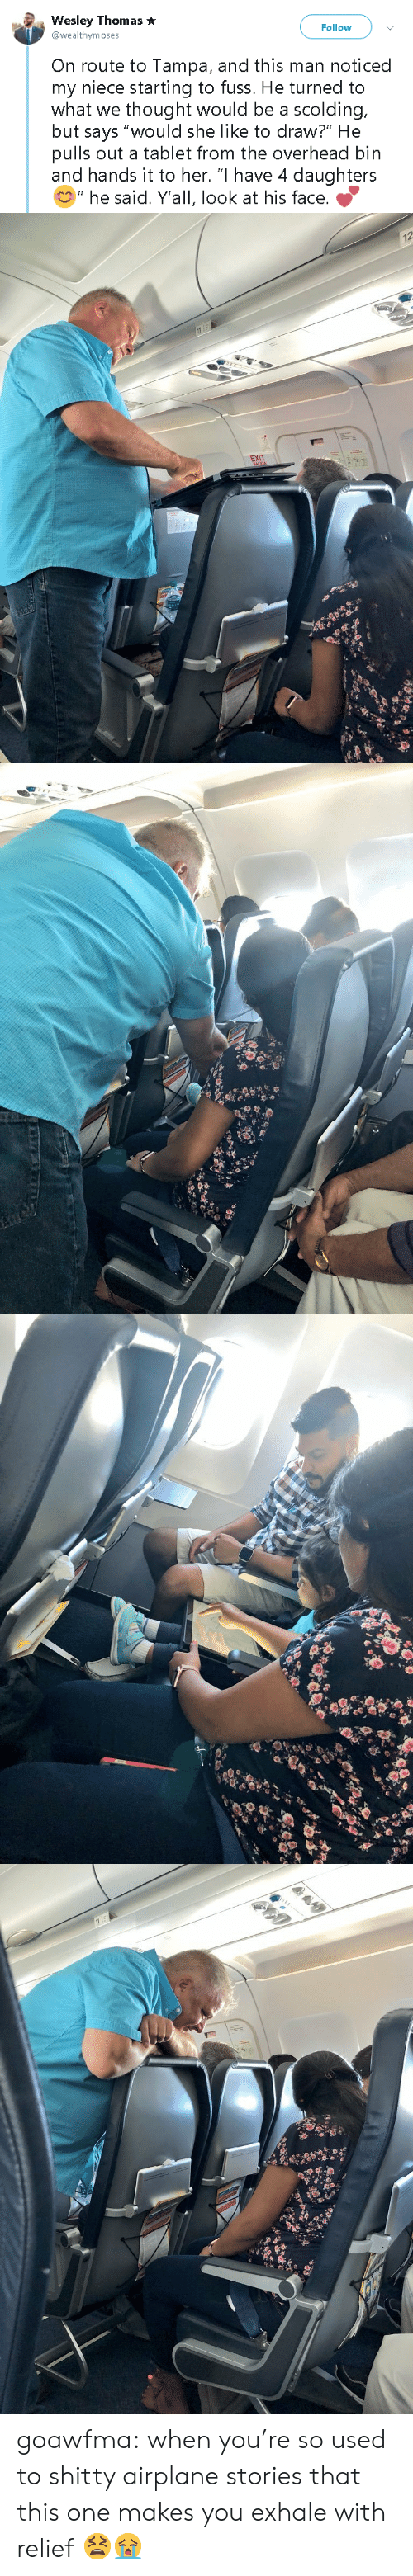 """Fuss: Wesley Thomas  @wealthymoses  Follow  On route to Tampa, and this man noticed  my niece starting to fuss. He turned to  what we thought would be a scolding,  but says """"would she like to draw?"""" He  pulls out a tablet from the overhead bin  and hands it to her. """"I have 4 daughters  """" he said. Y'all, look at his face.   12  EXIT goawfma:  when you're so used to shitty airplane stories that this one makes you exhale with relief  😫😭"""